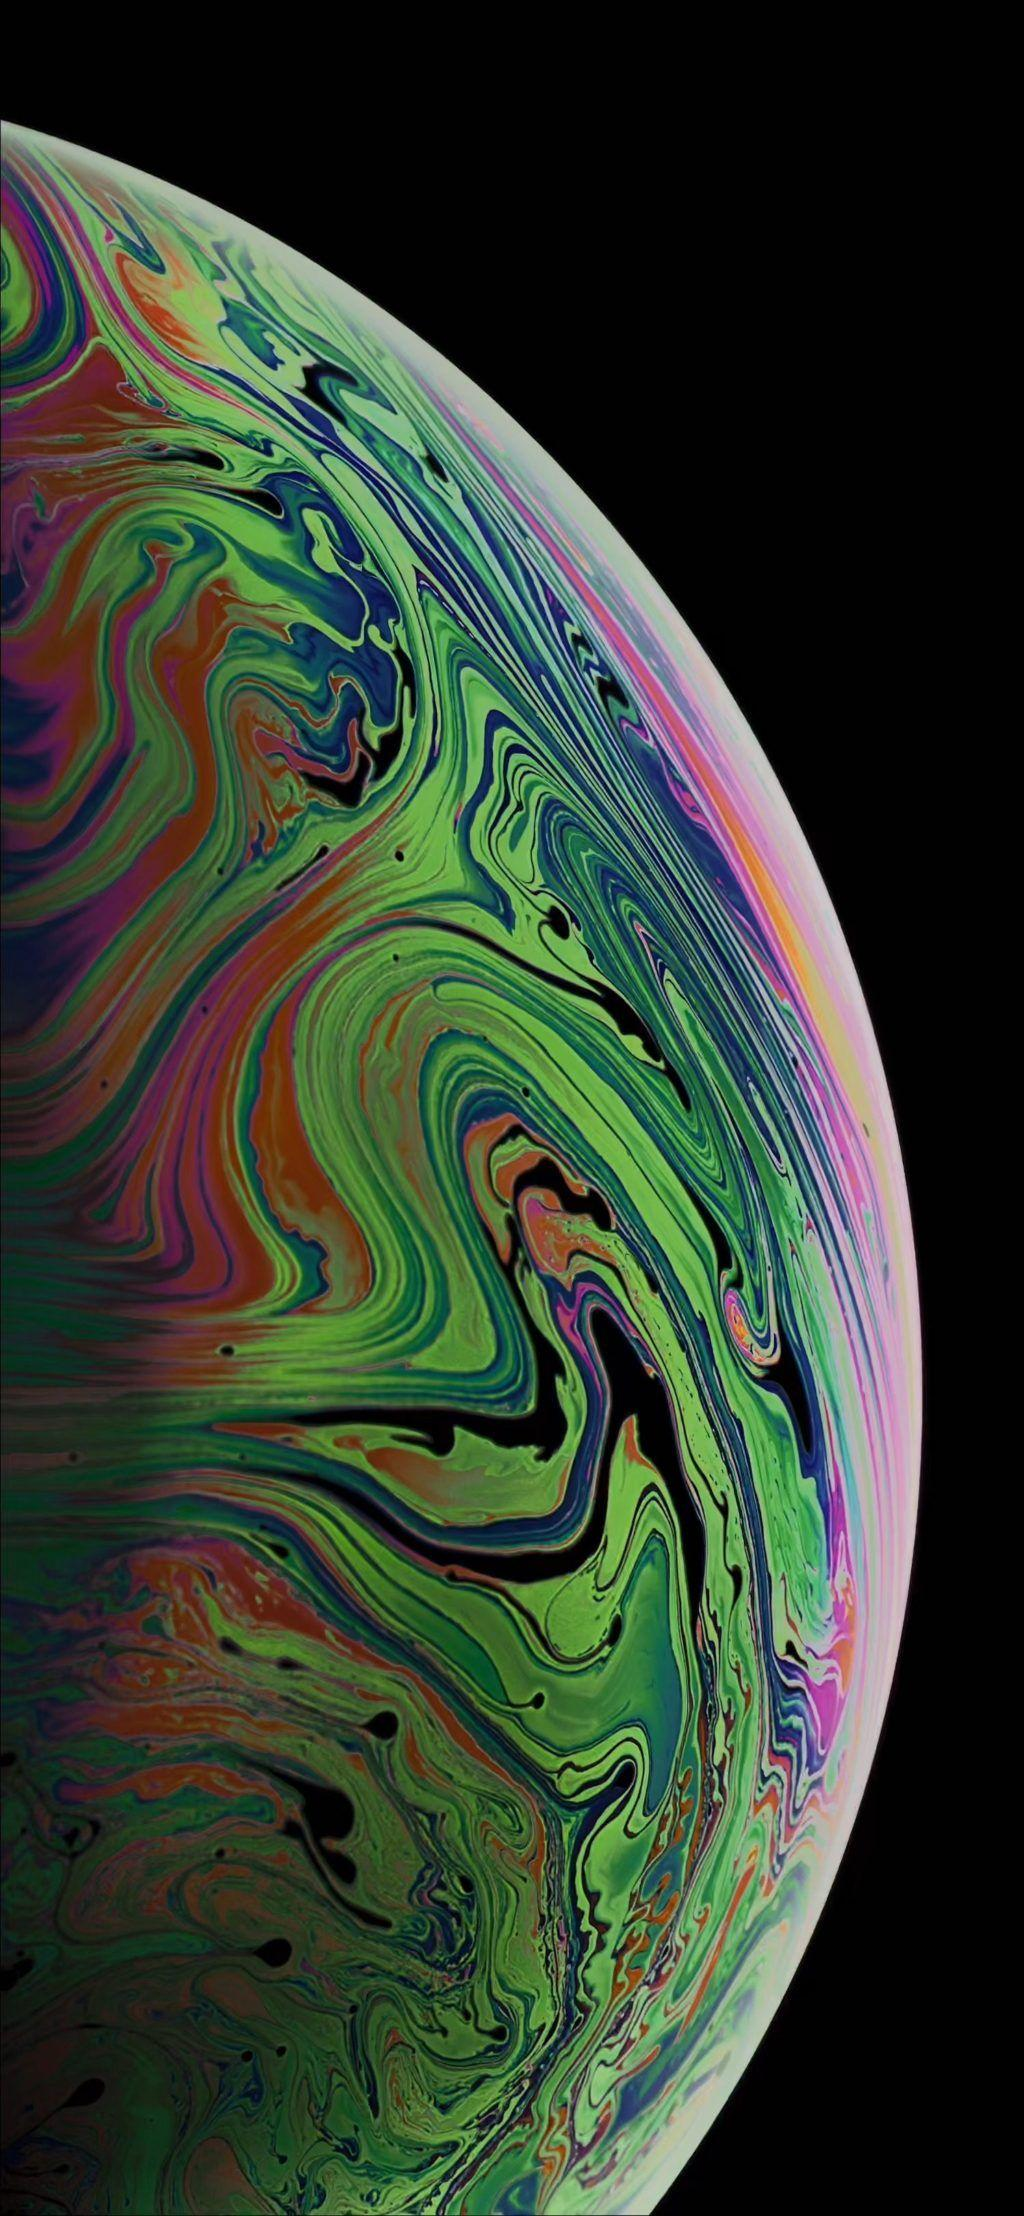 Download: iPhone XS and iPhone XS Max Wallpapers